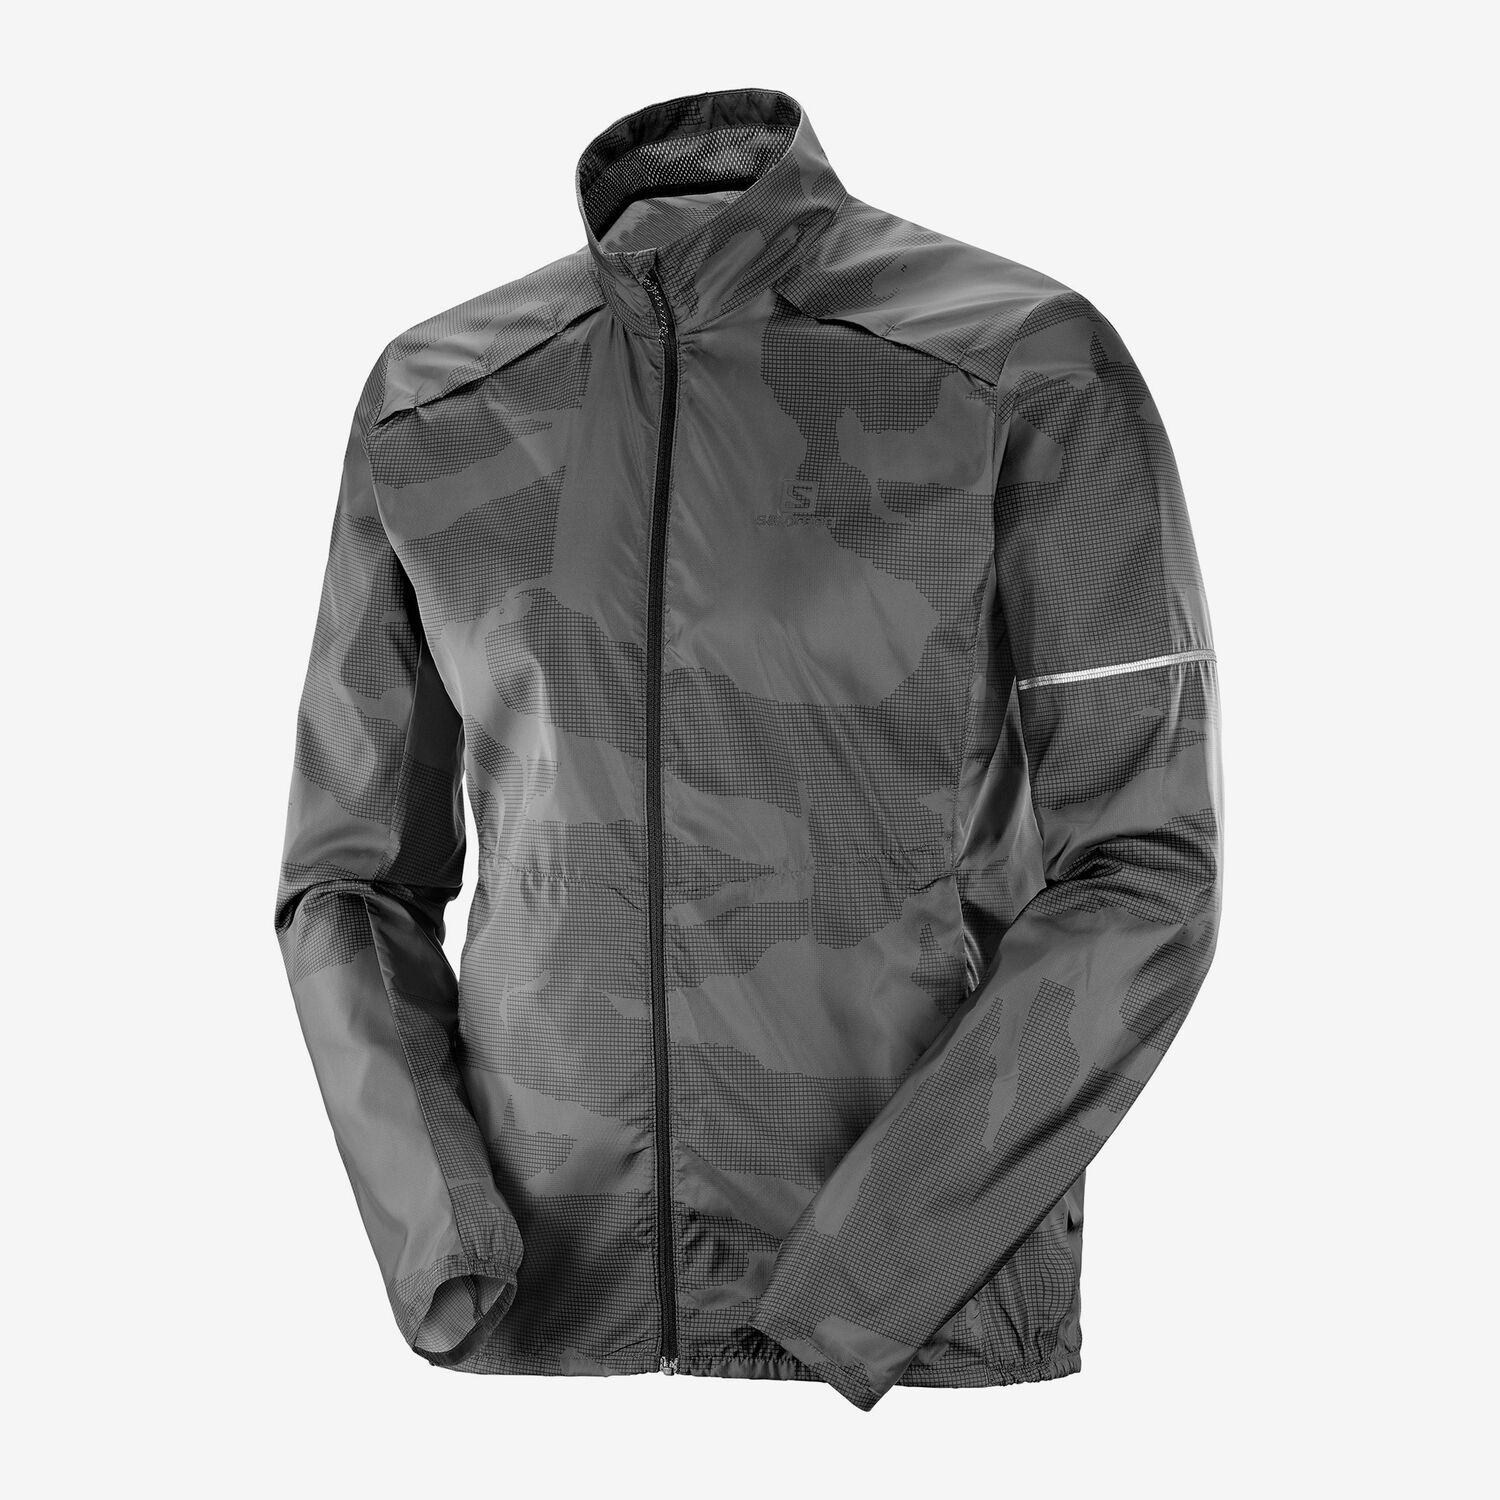 SALOMON Agile WIND JKT M-Ebony-Black-P Čierna XL